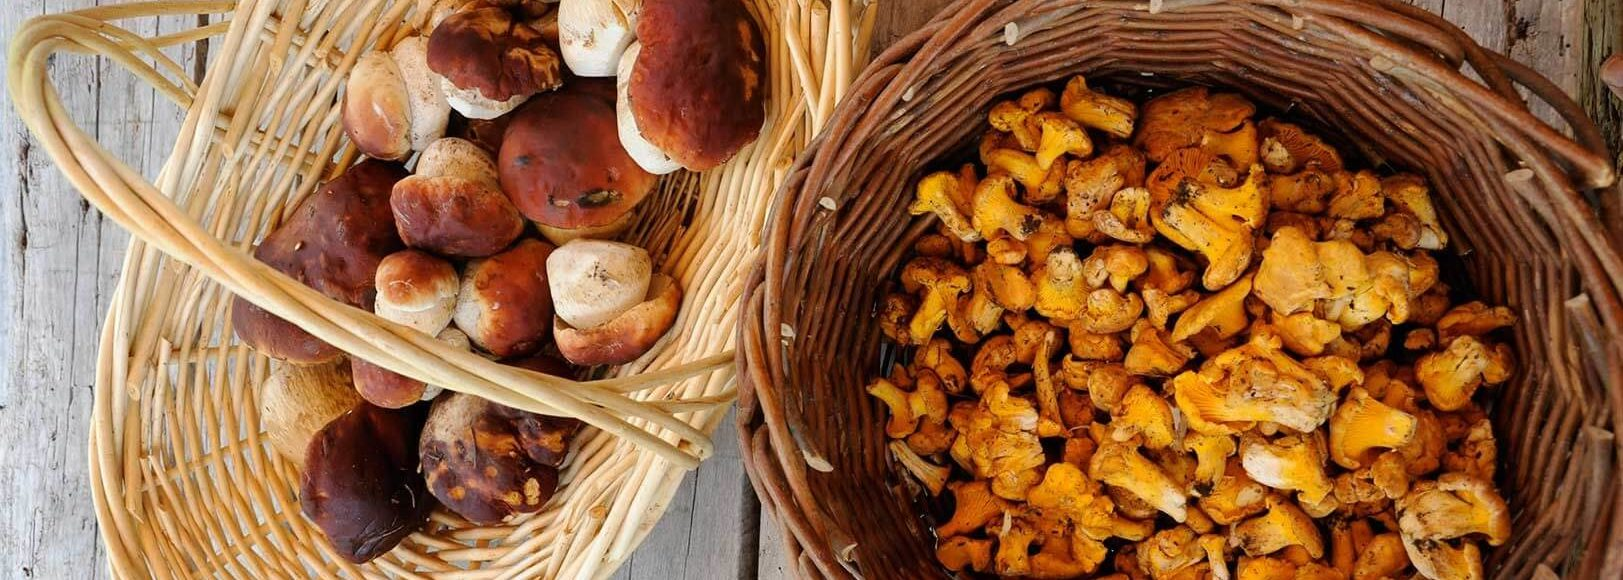 Gathered fresh, wild mushrooms in baskets